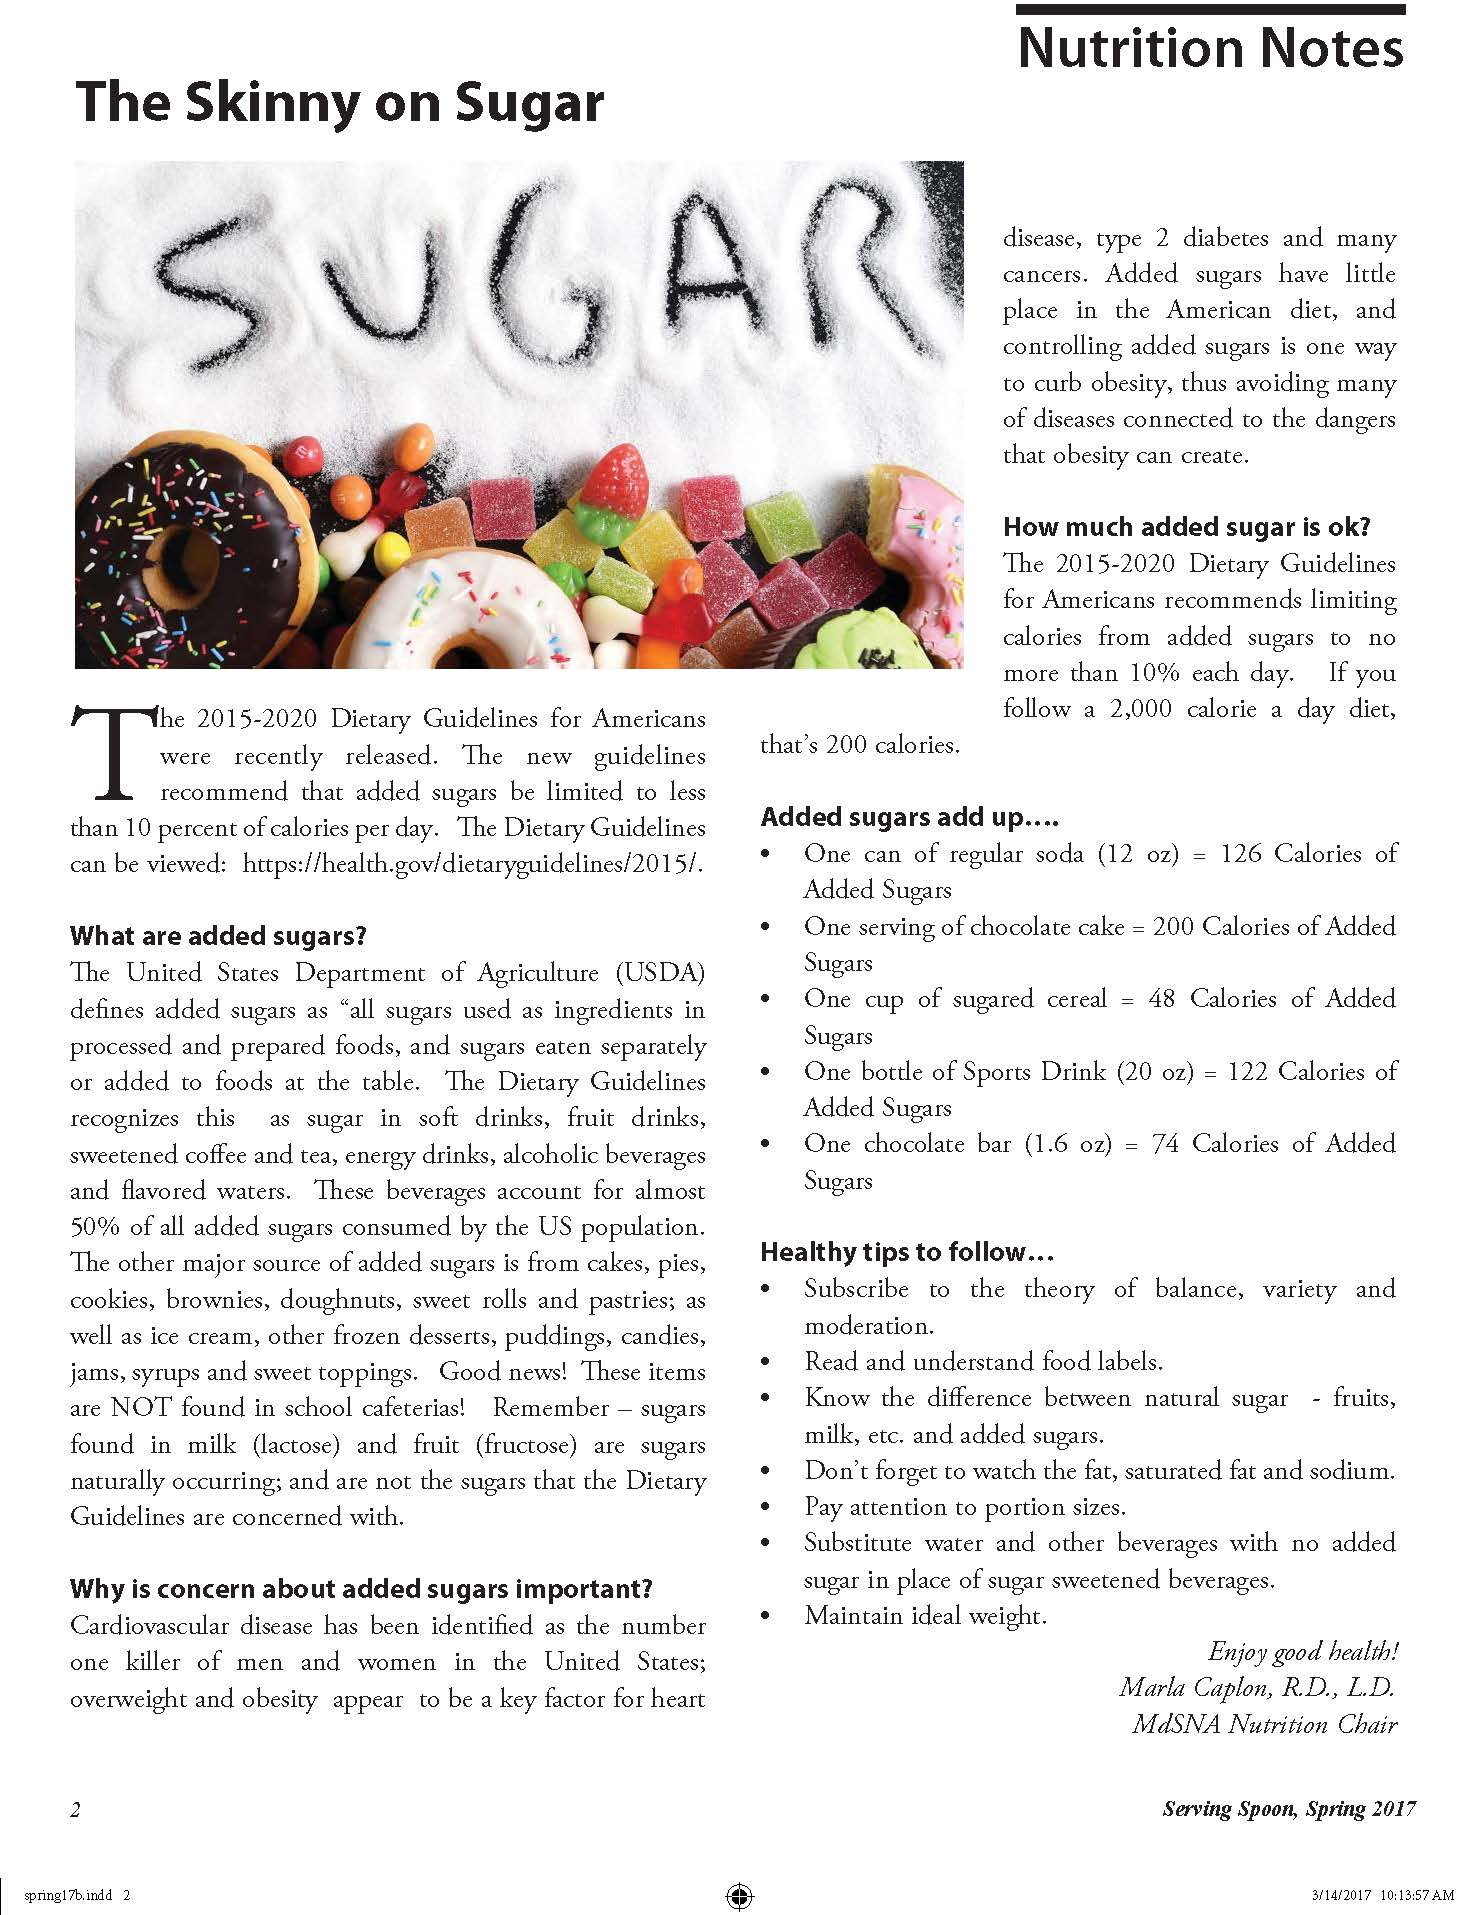 The Skinny on Sugar Article